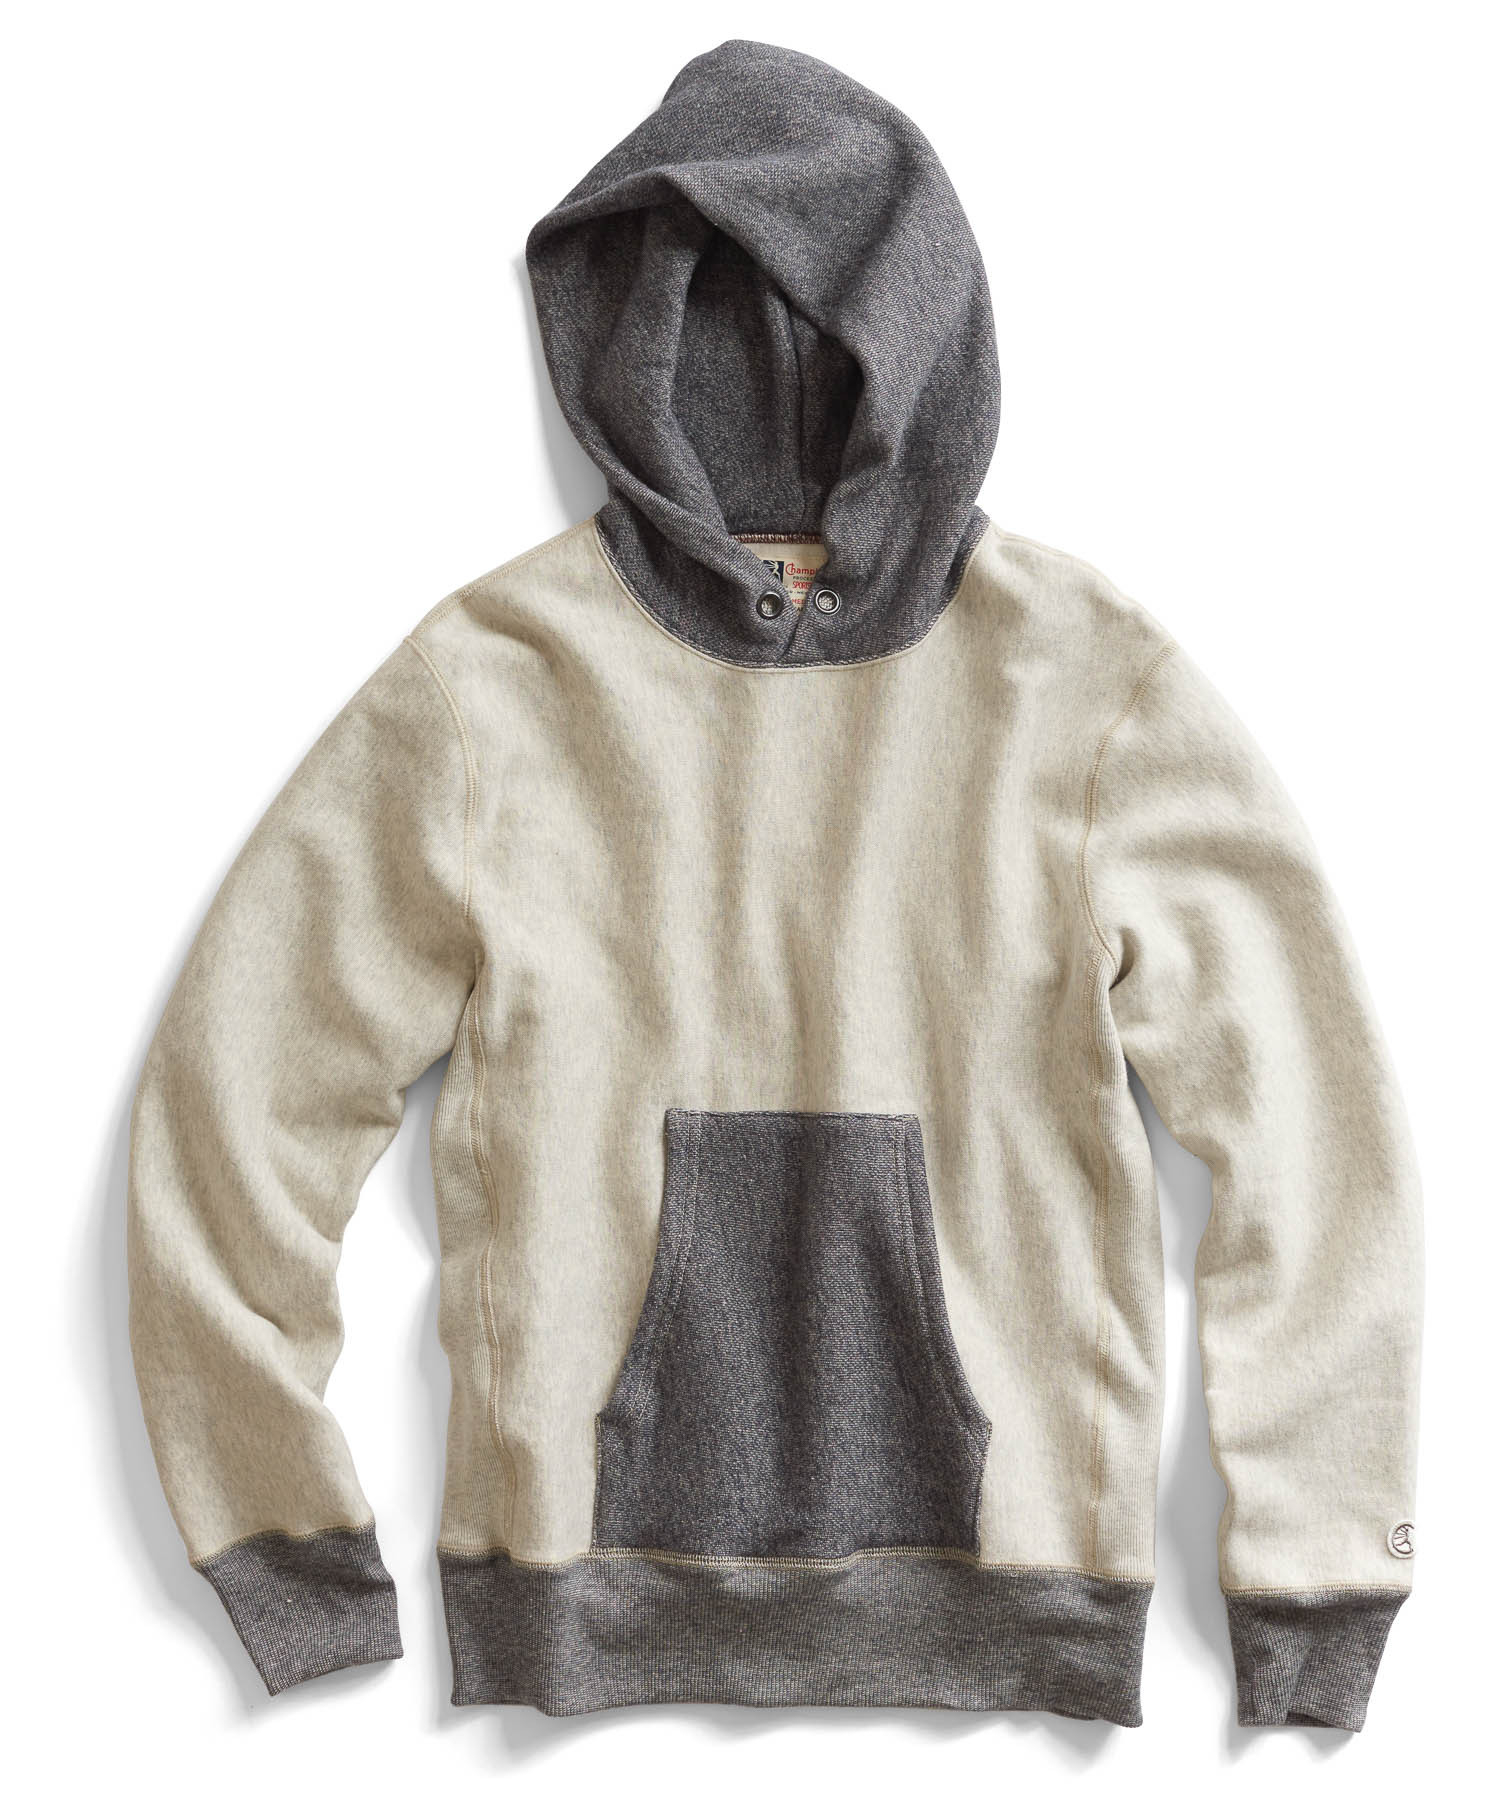 todd snyder vintage hoodie in oatmeal heather in natural. Black Bedroom Furniture Sets. Home Design Ideas